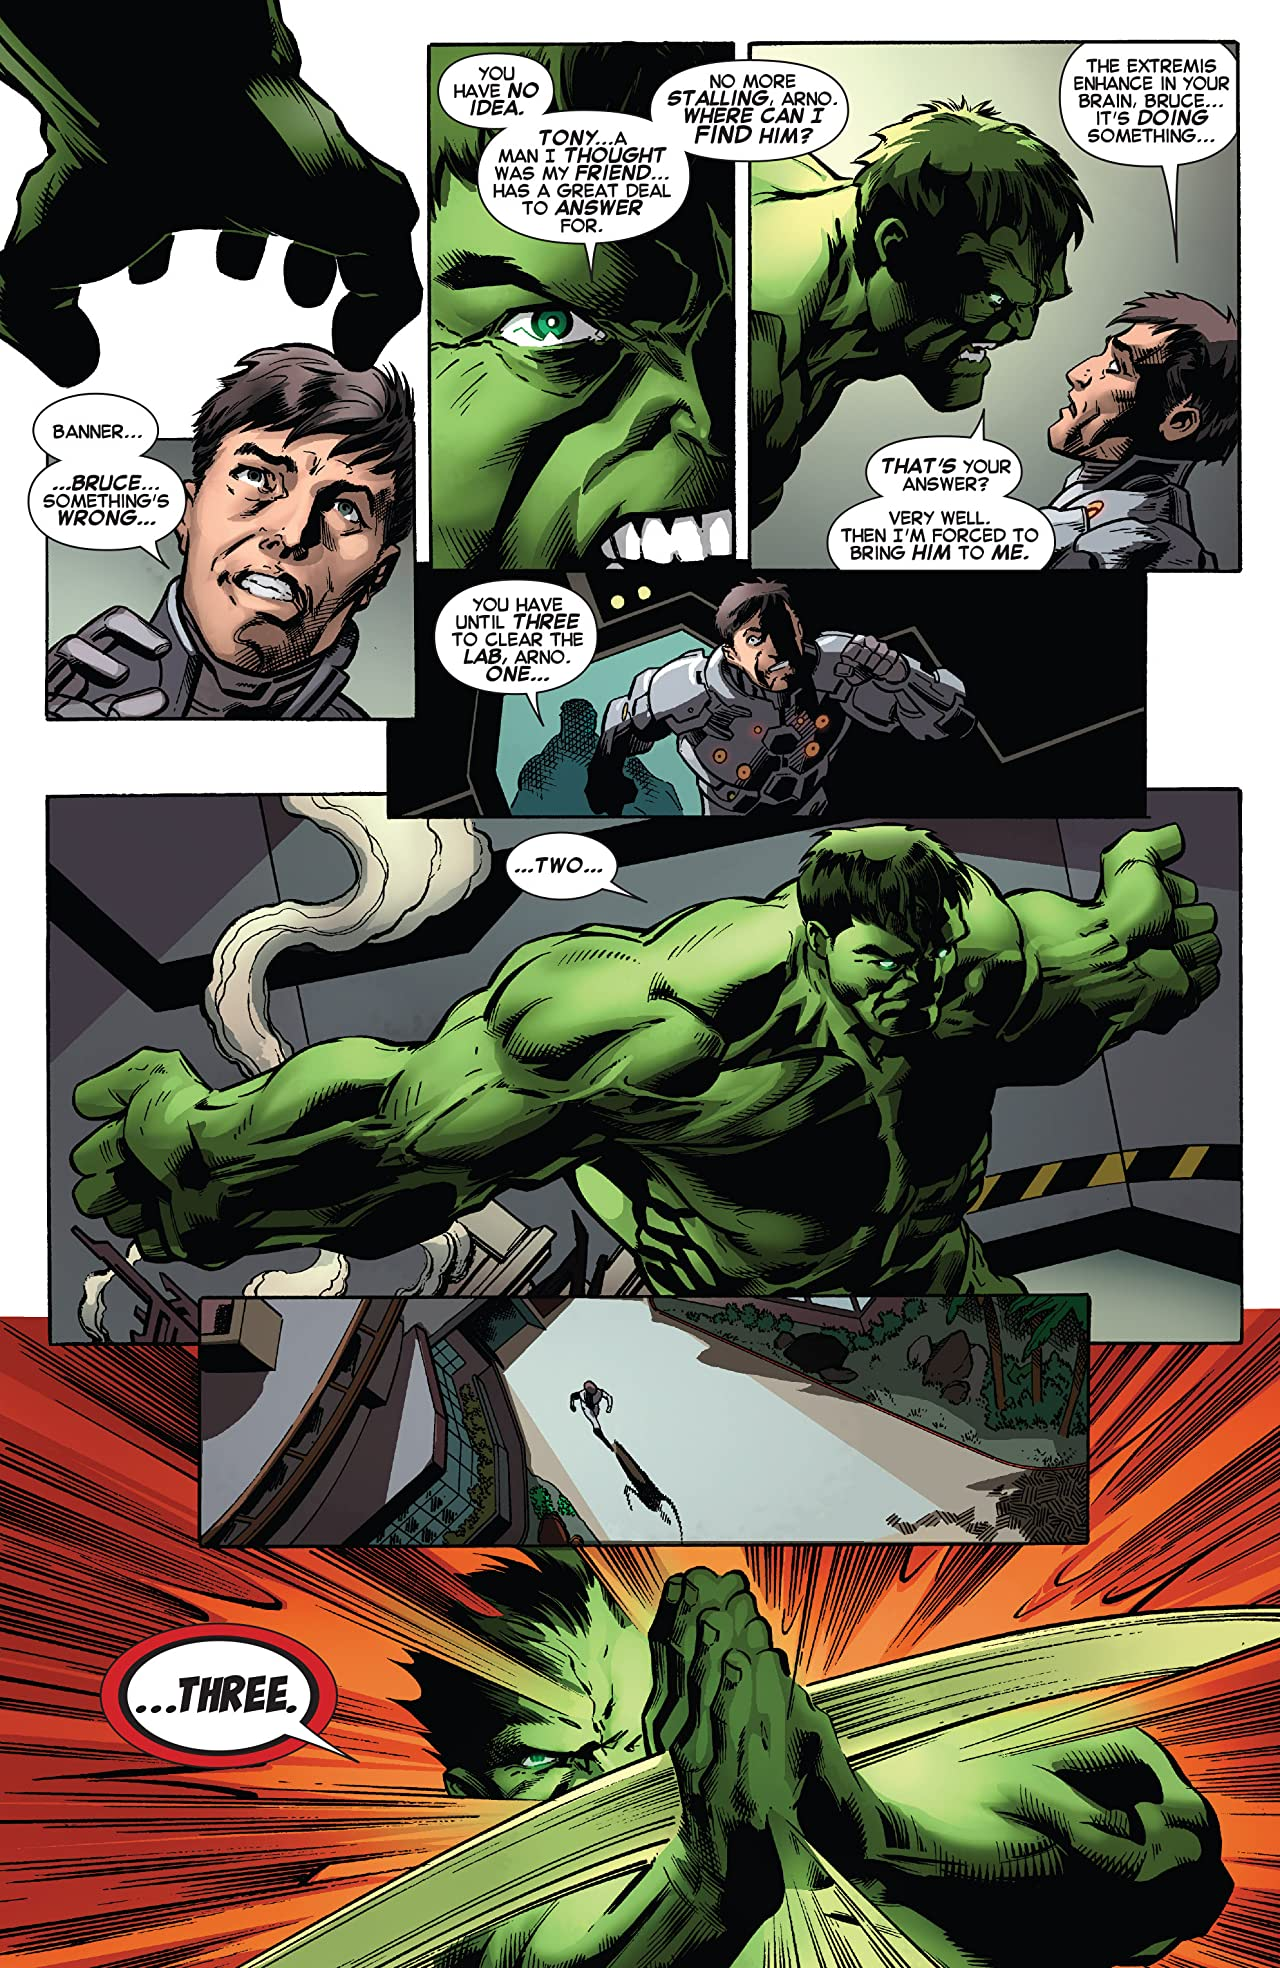 Original Sin: Hulk vs. Iron Man #3